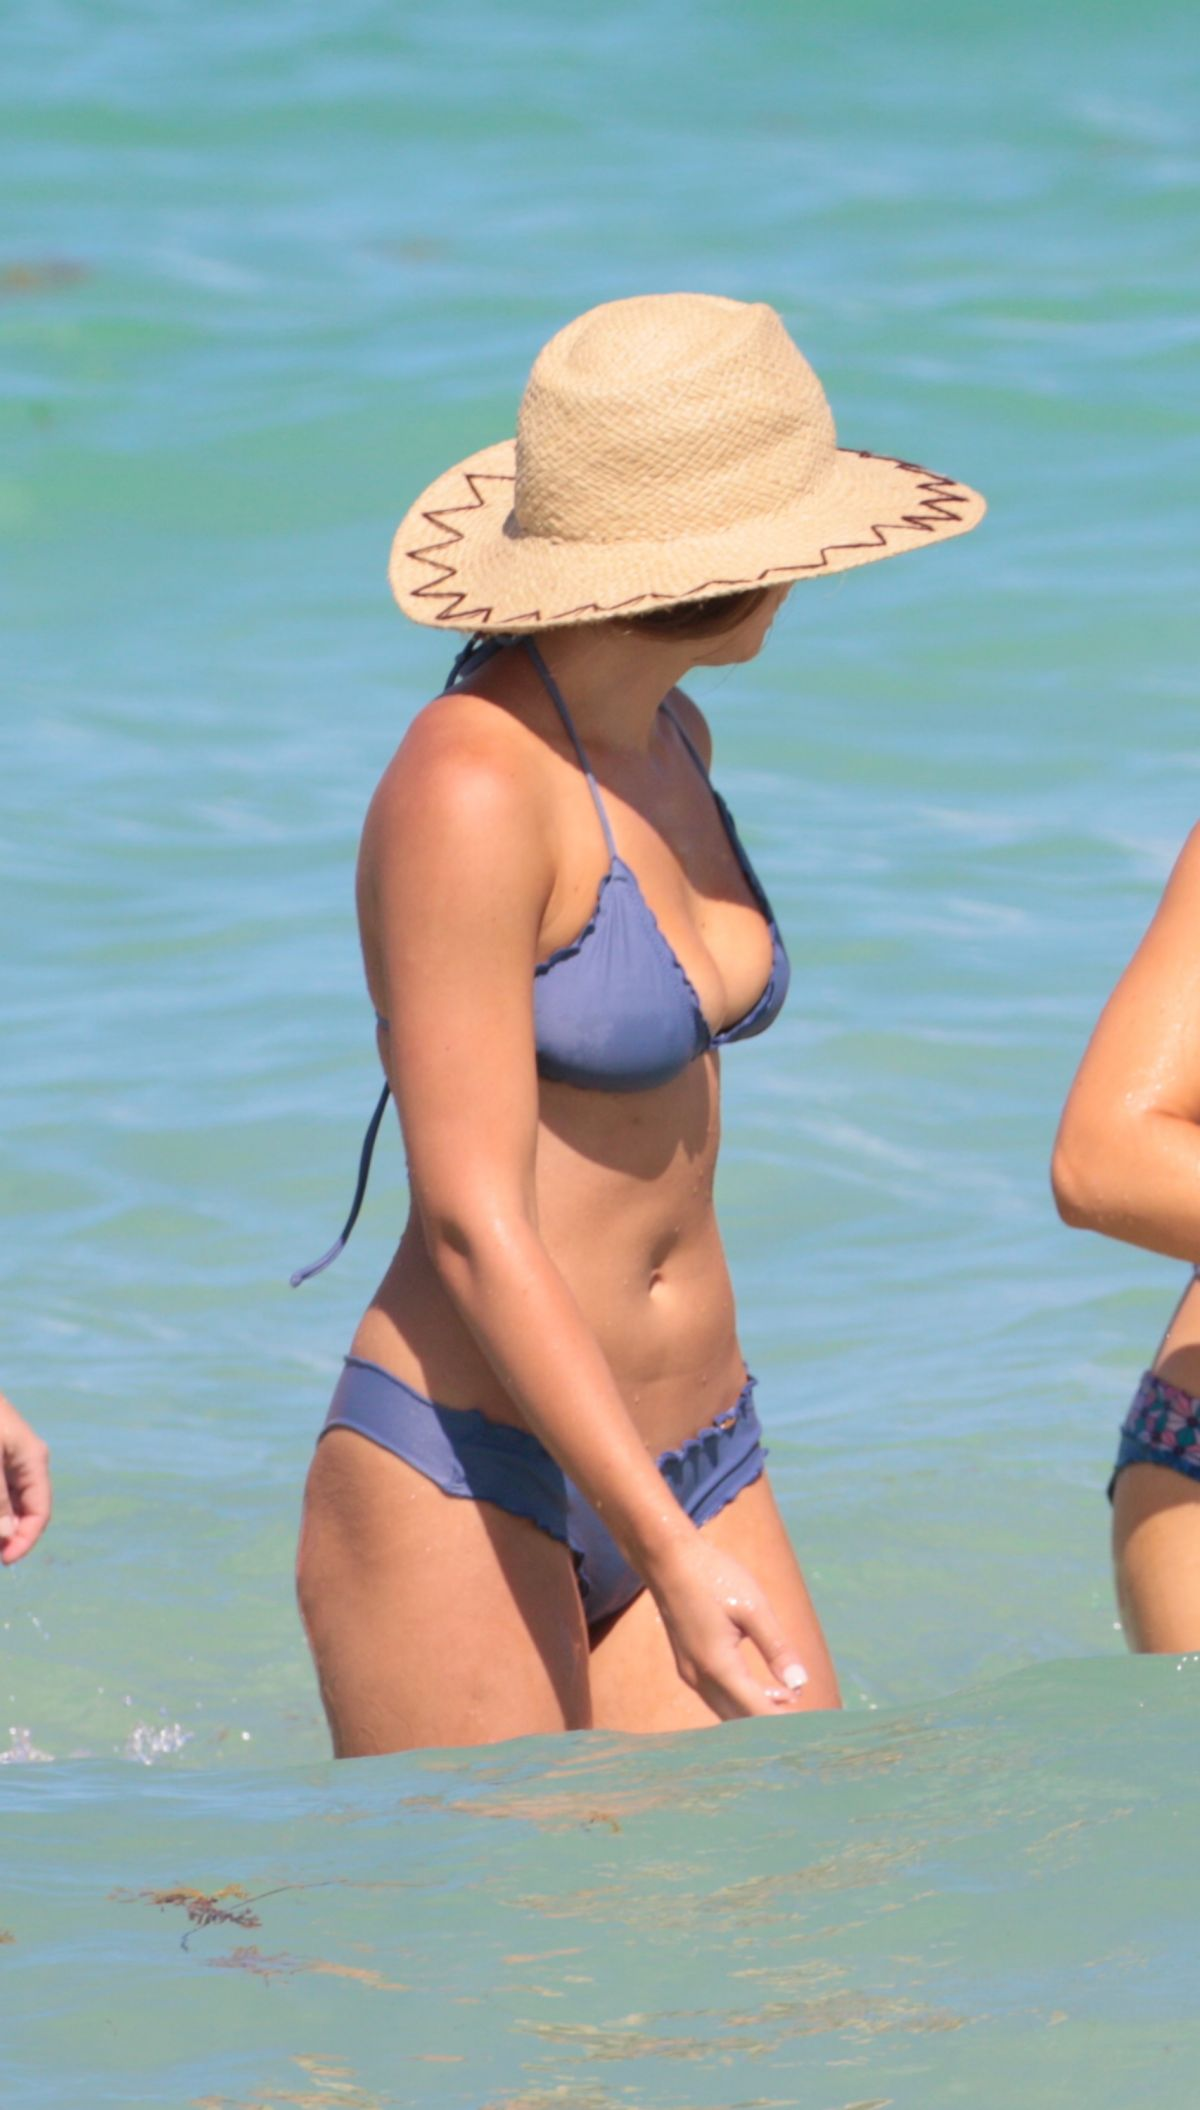 Keleigh Sperry in Bikini on the beach in Mexico Pic 6 of 35